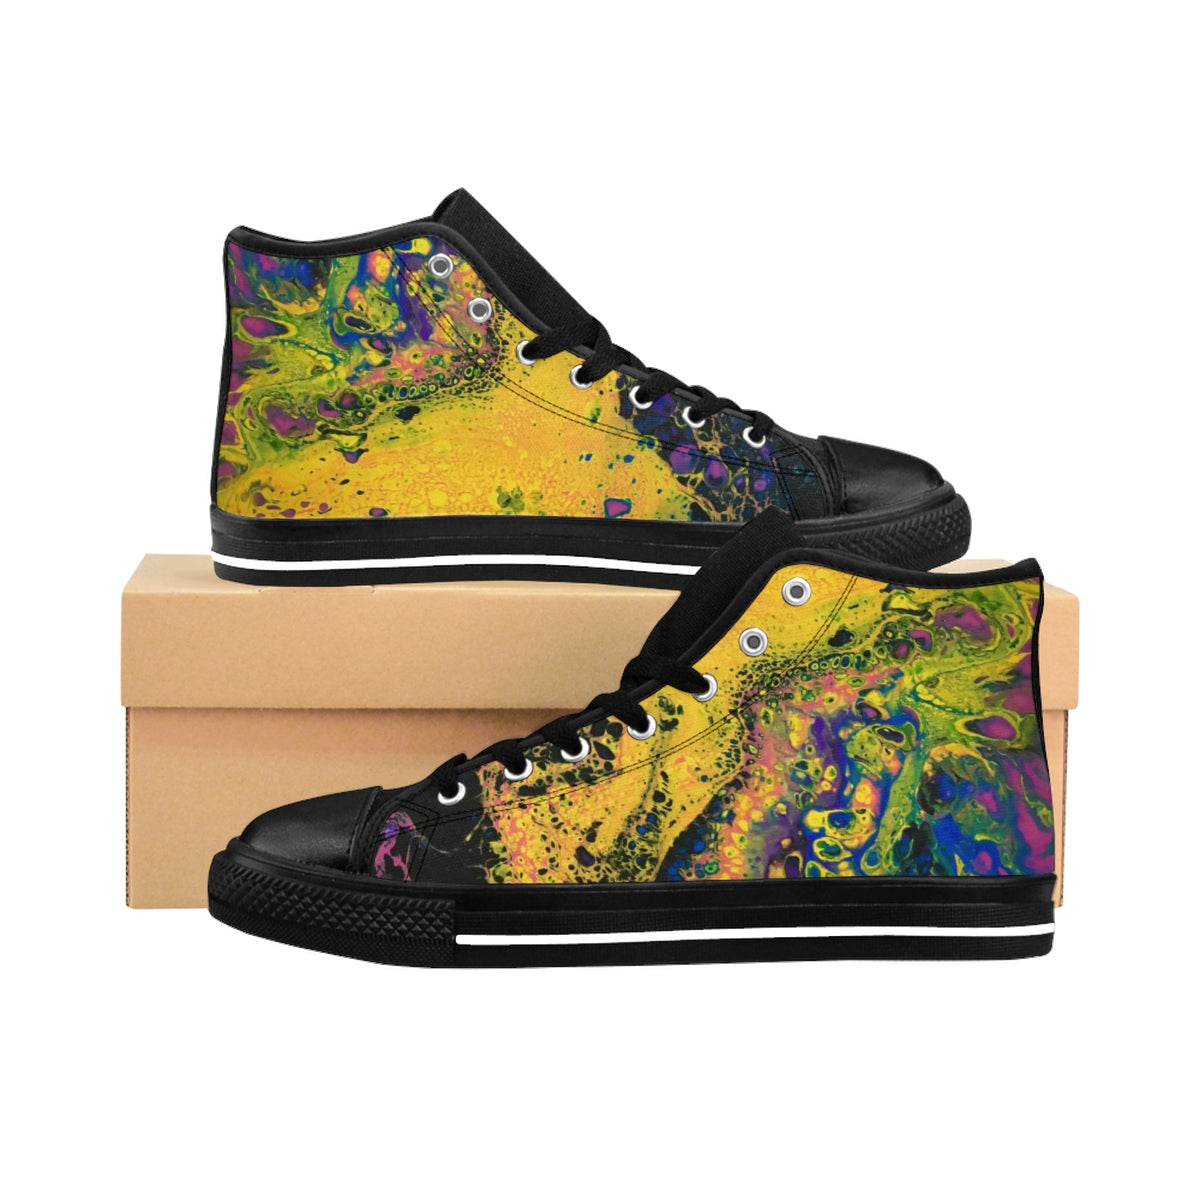 Solar Flare Women's High-Top Sneakers